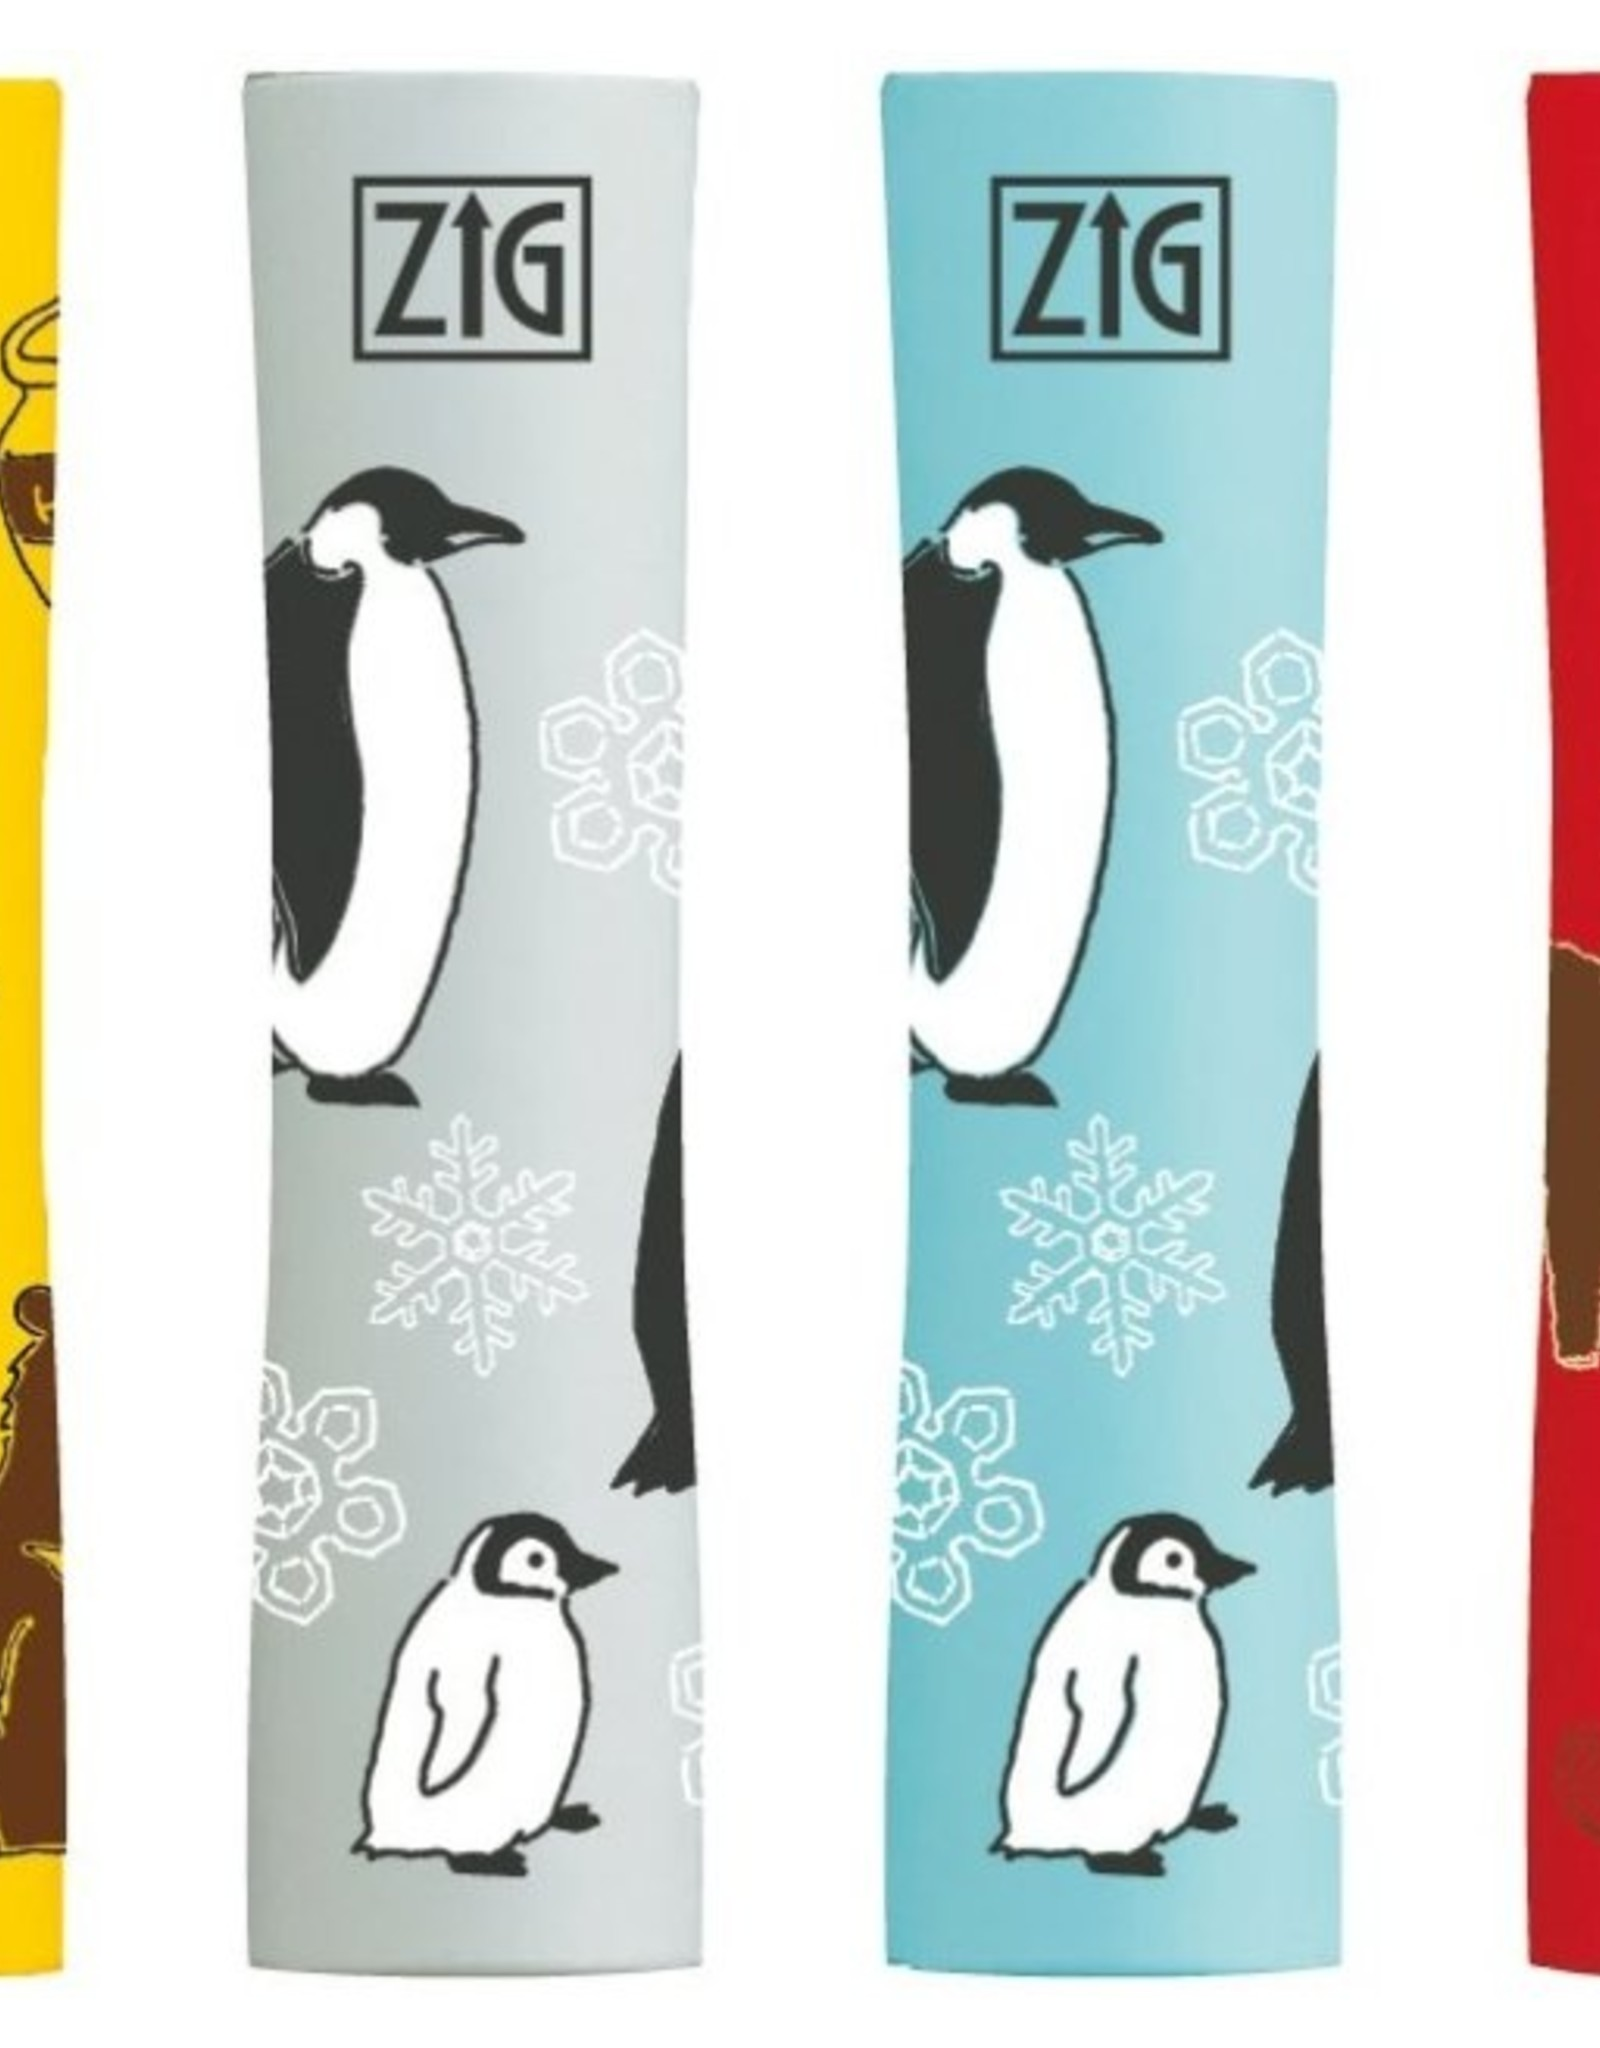 Zig Cocoiro Extra Fine Animal Design *Limited Edition 2021*